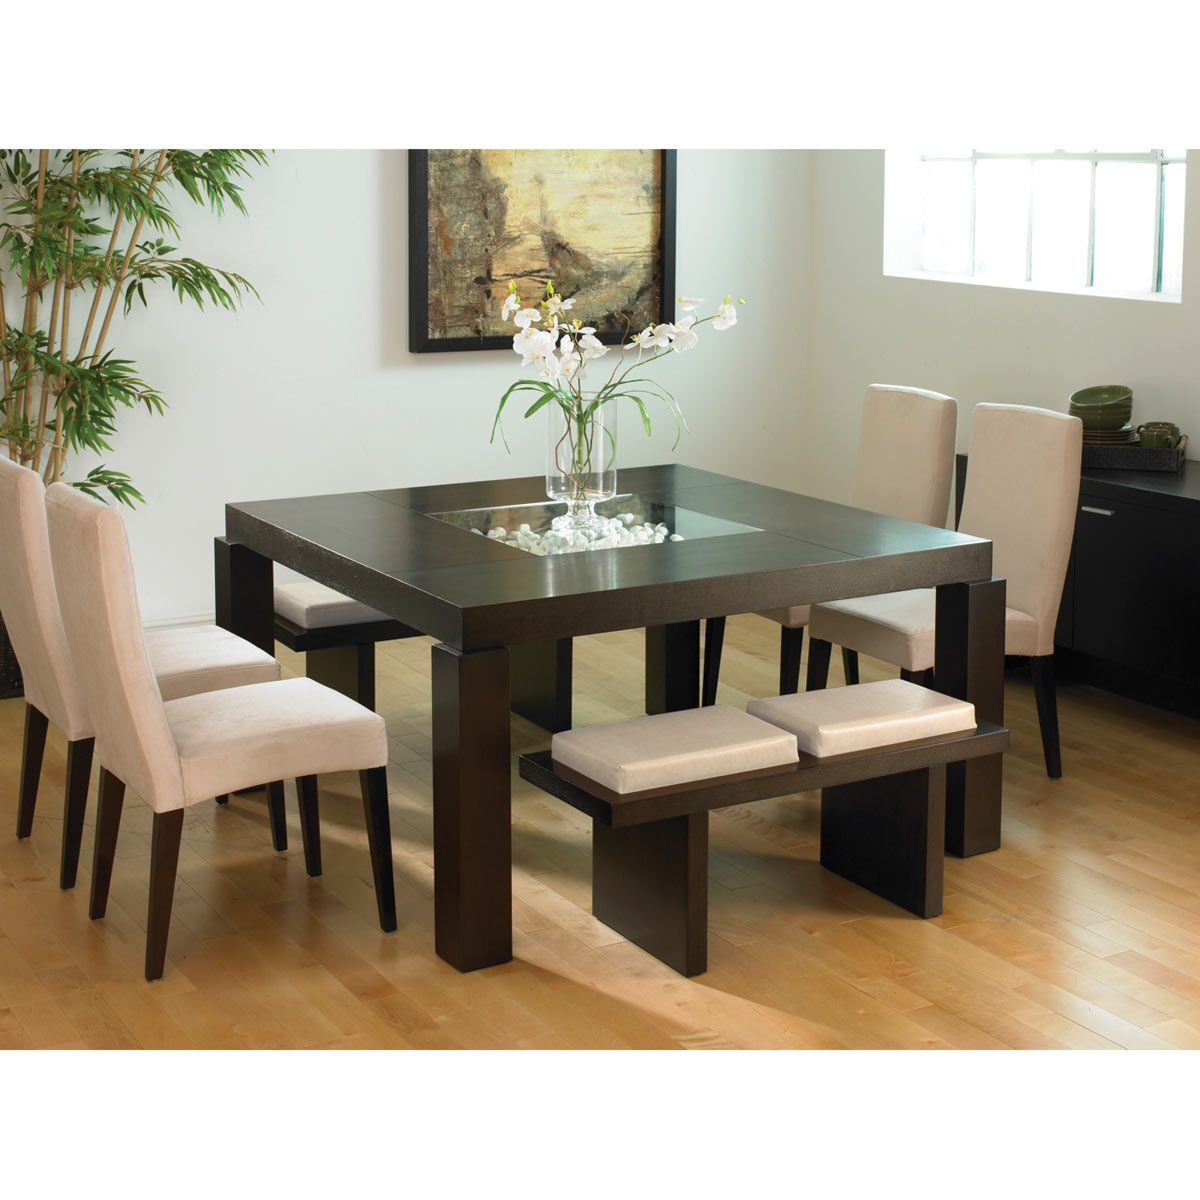 Elegant Dining Room Sets: 5pc Dining/comitia Molina In 2019